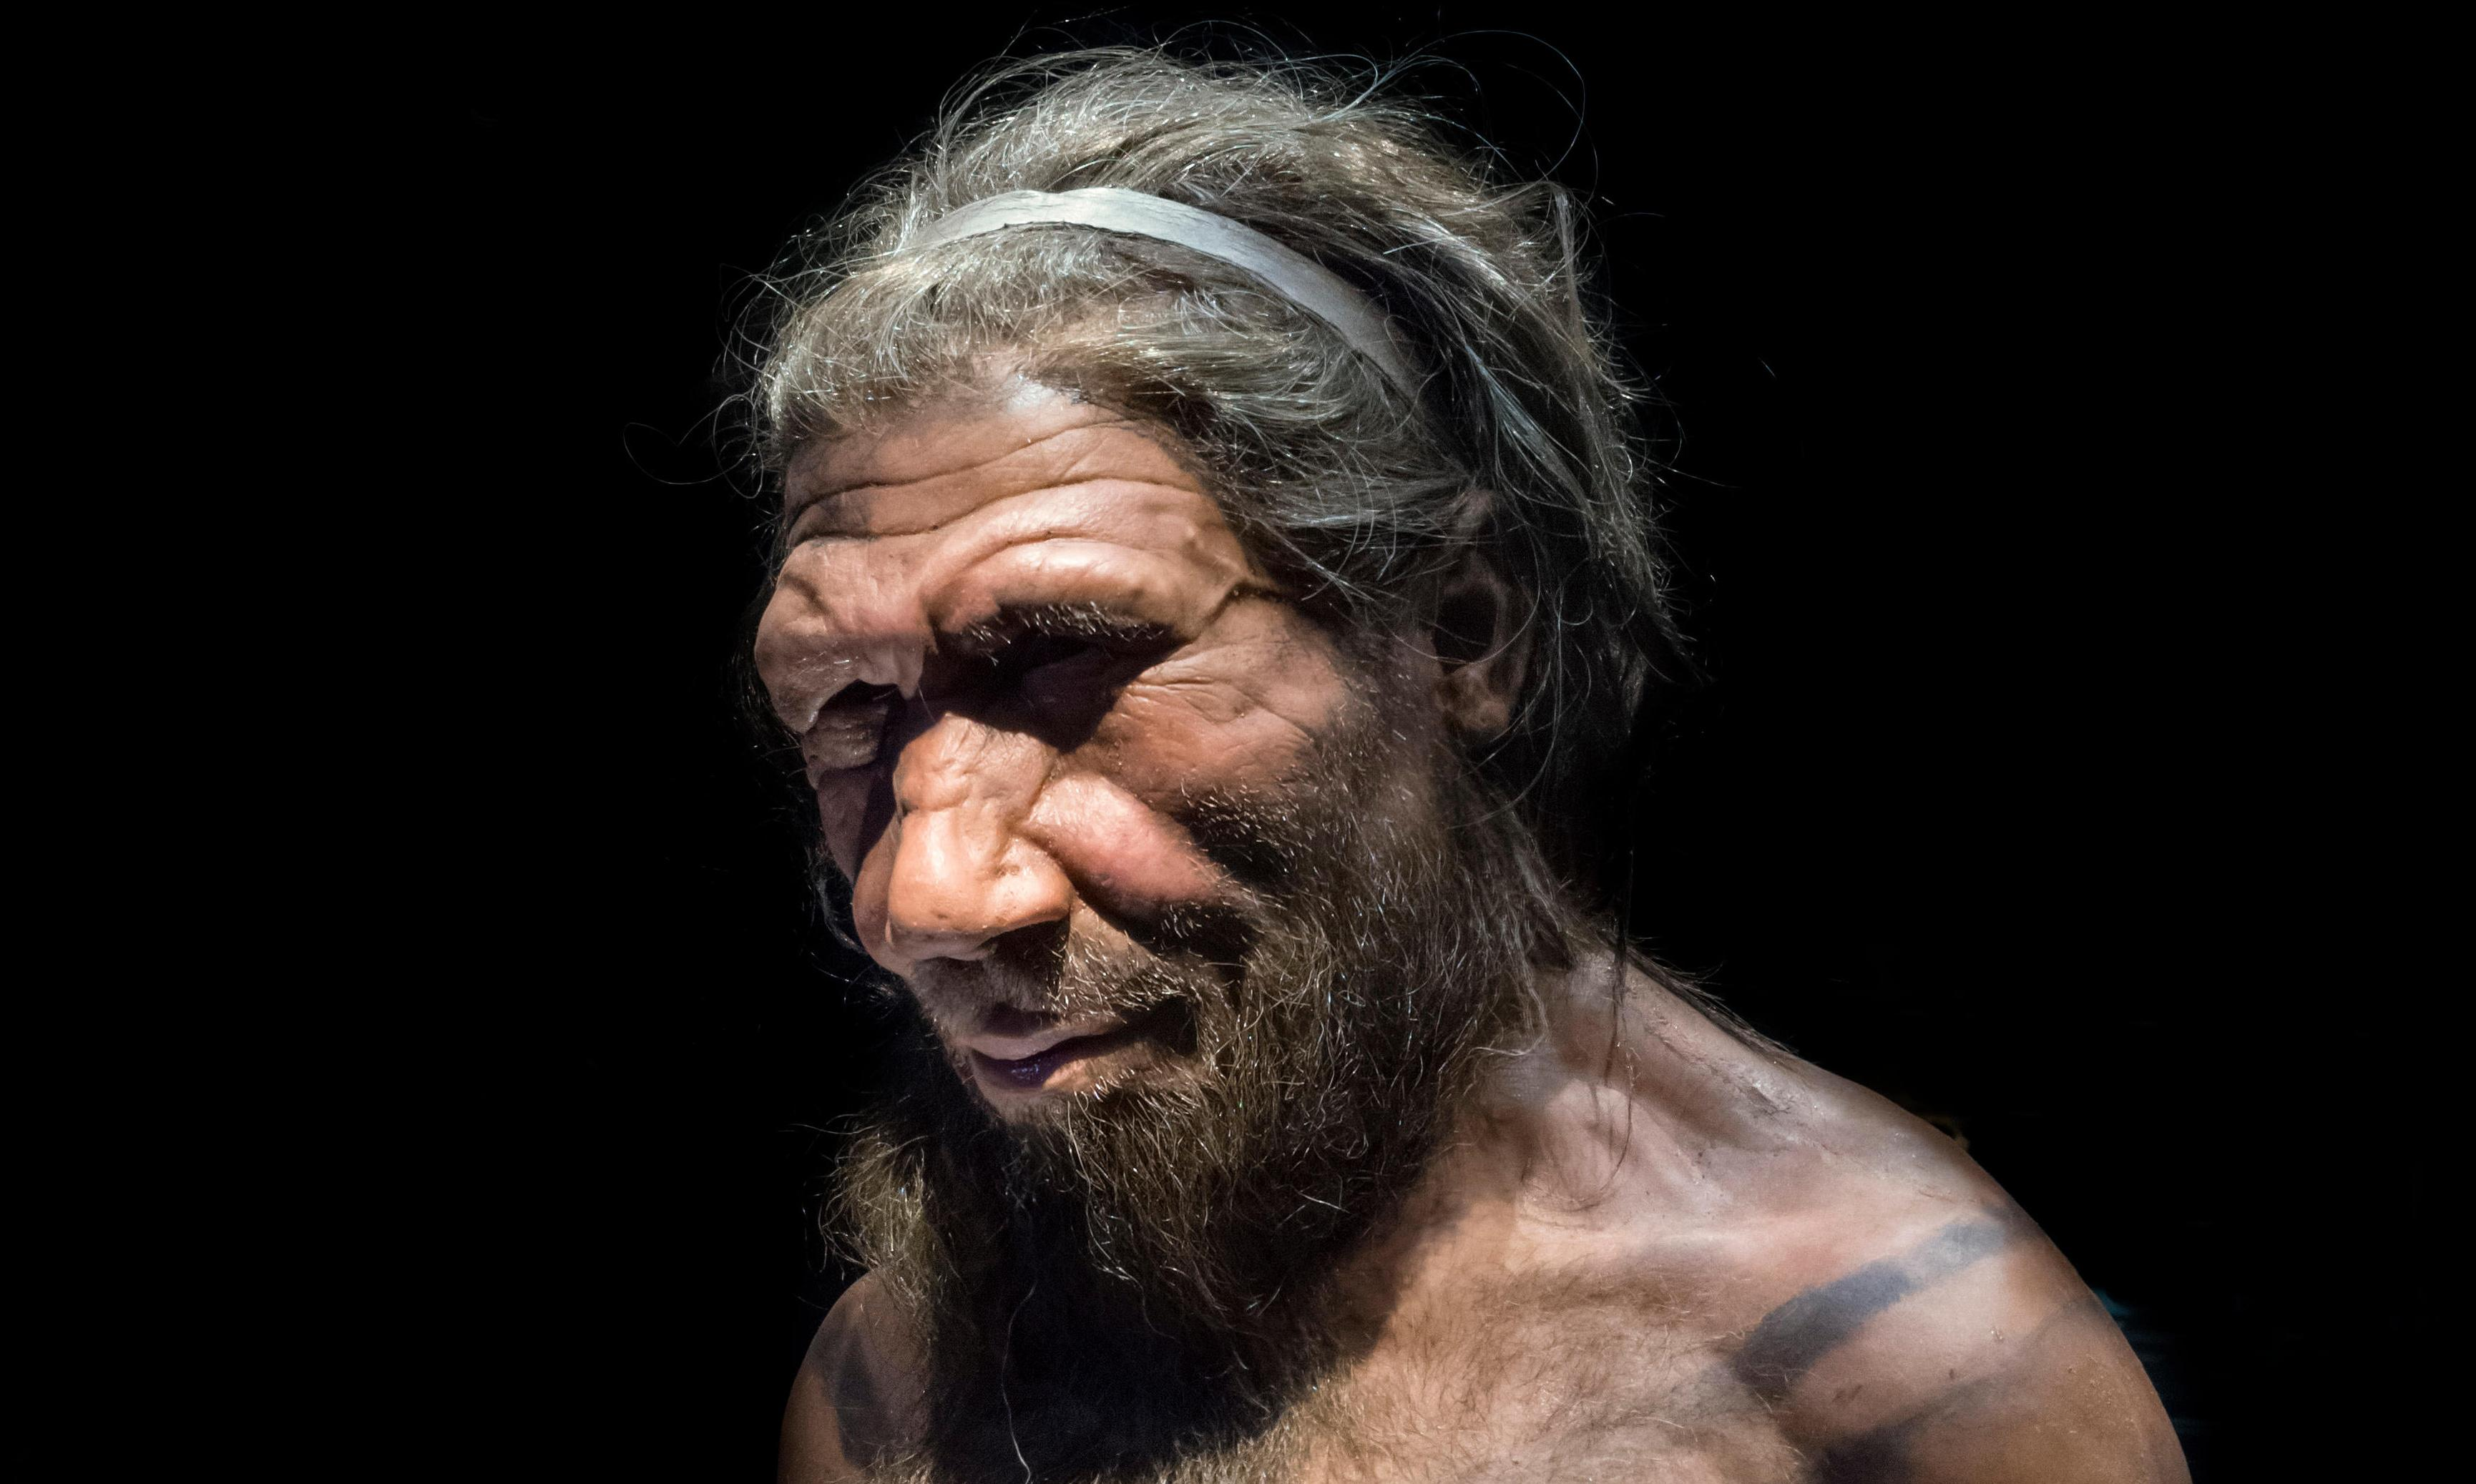 Bad luck may have caused Neanderthals' extinction – study